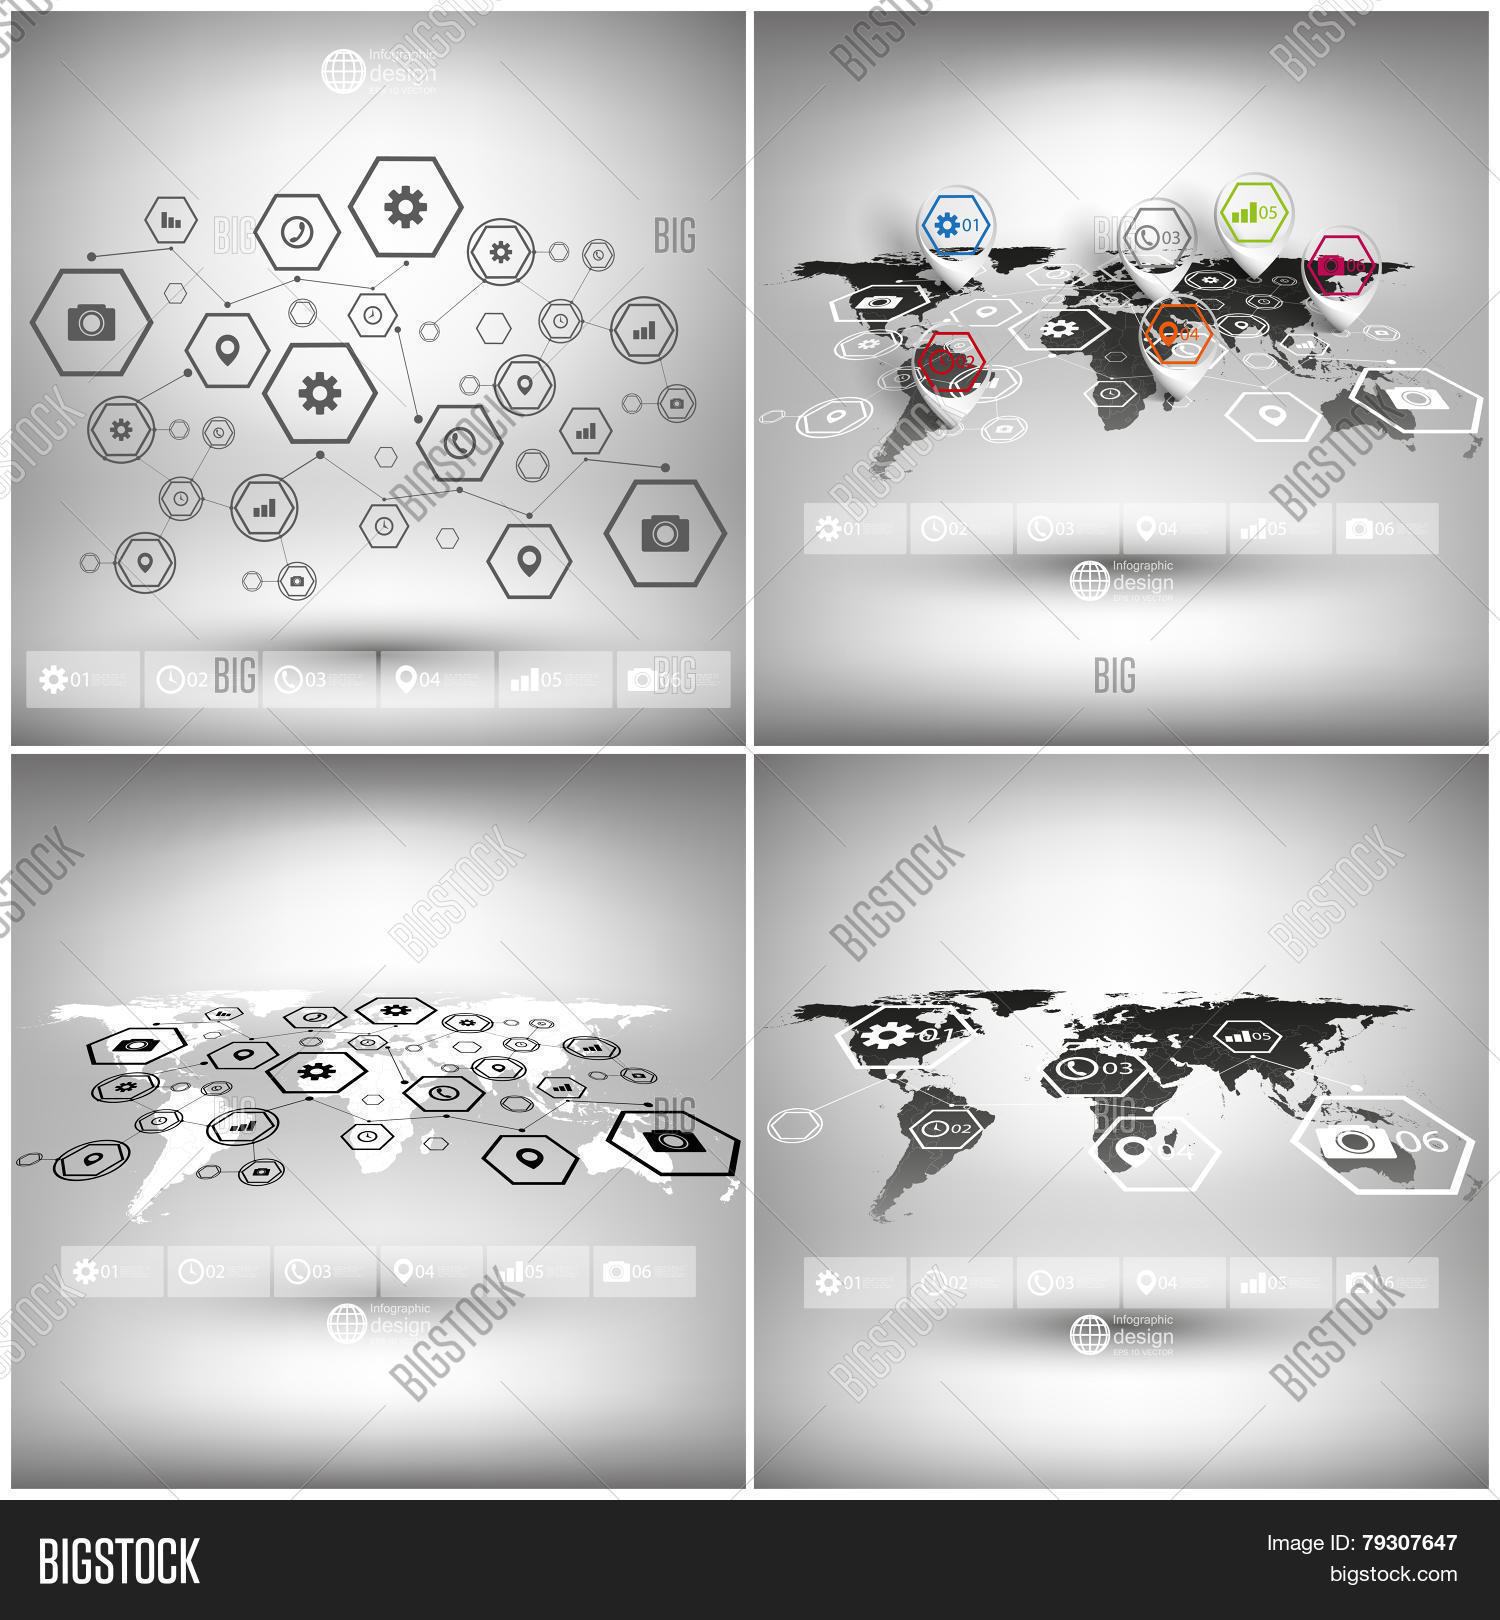 Set world maps vector photo free trial bigstock set of world maps in perspective infographic vector templates for business design gumiabroncs Images